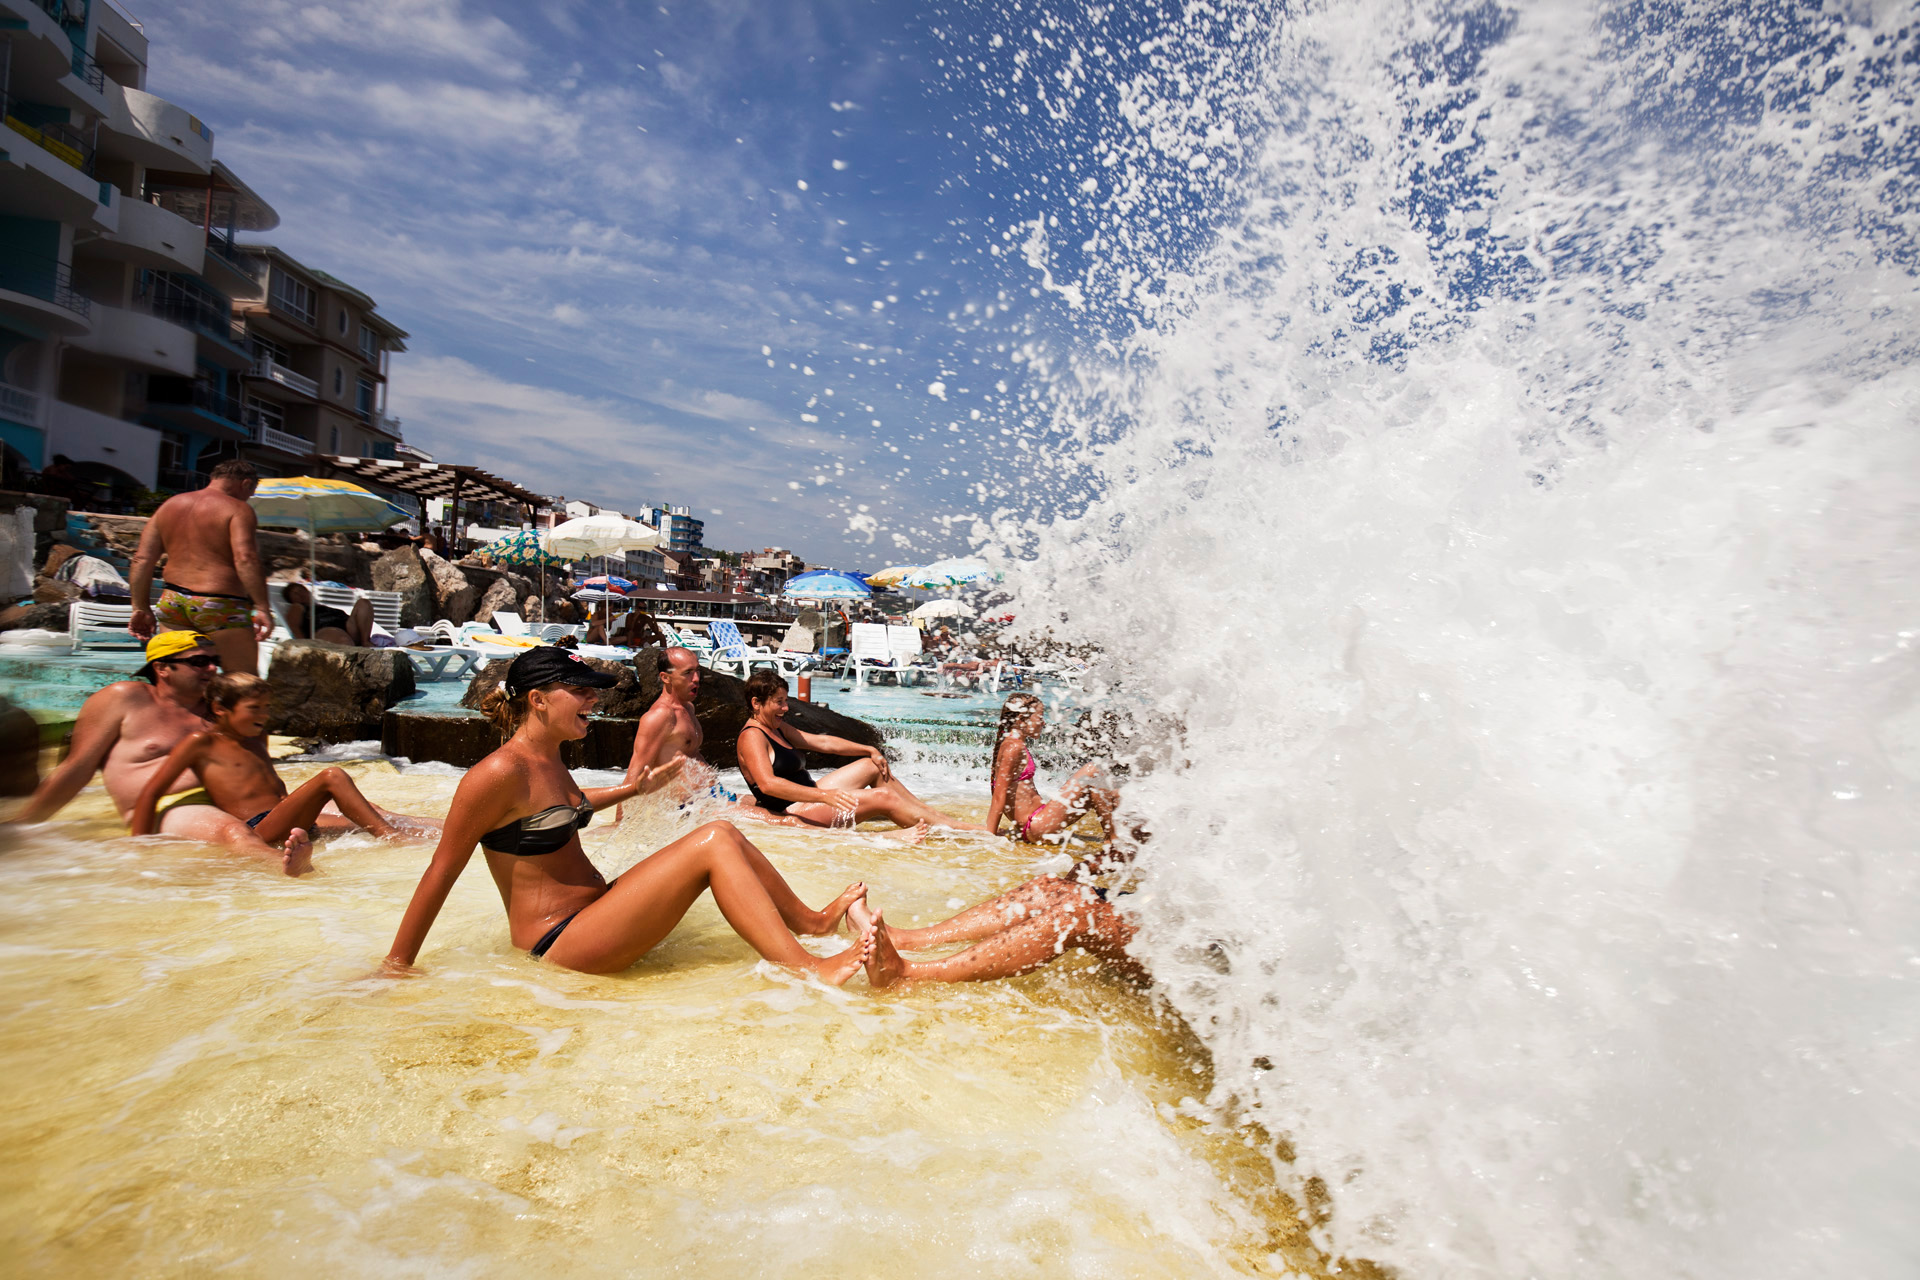 A giant wave splashes sunbathers on the Santa Barbara beach, a picturesque strip along a marvelous coastline with rocks and stone, popular among young upper middle-class families with children.  Utes, Crimea